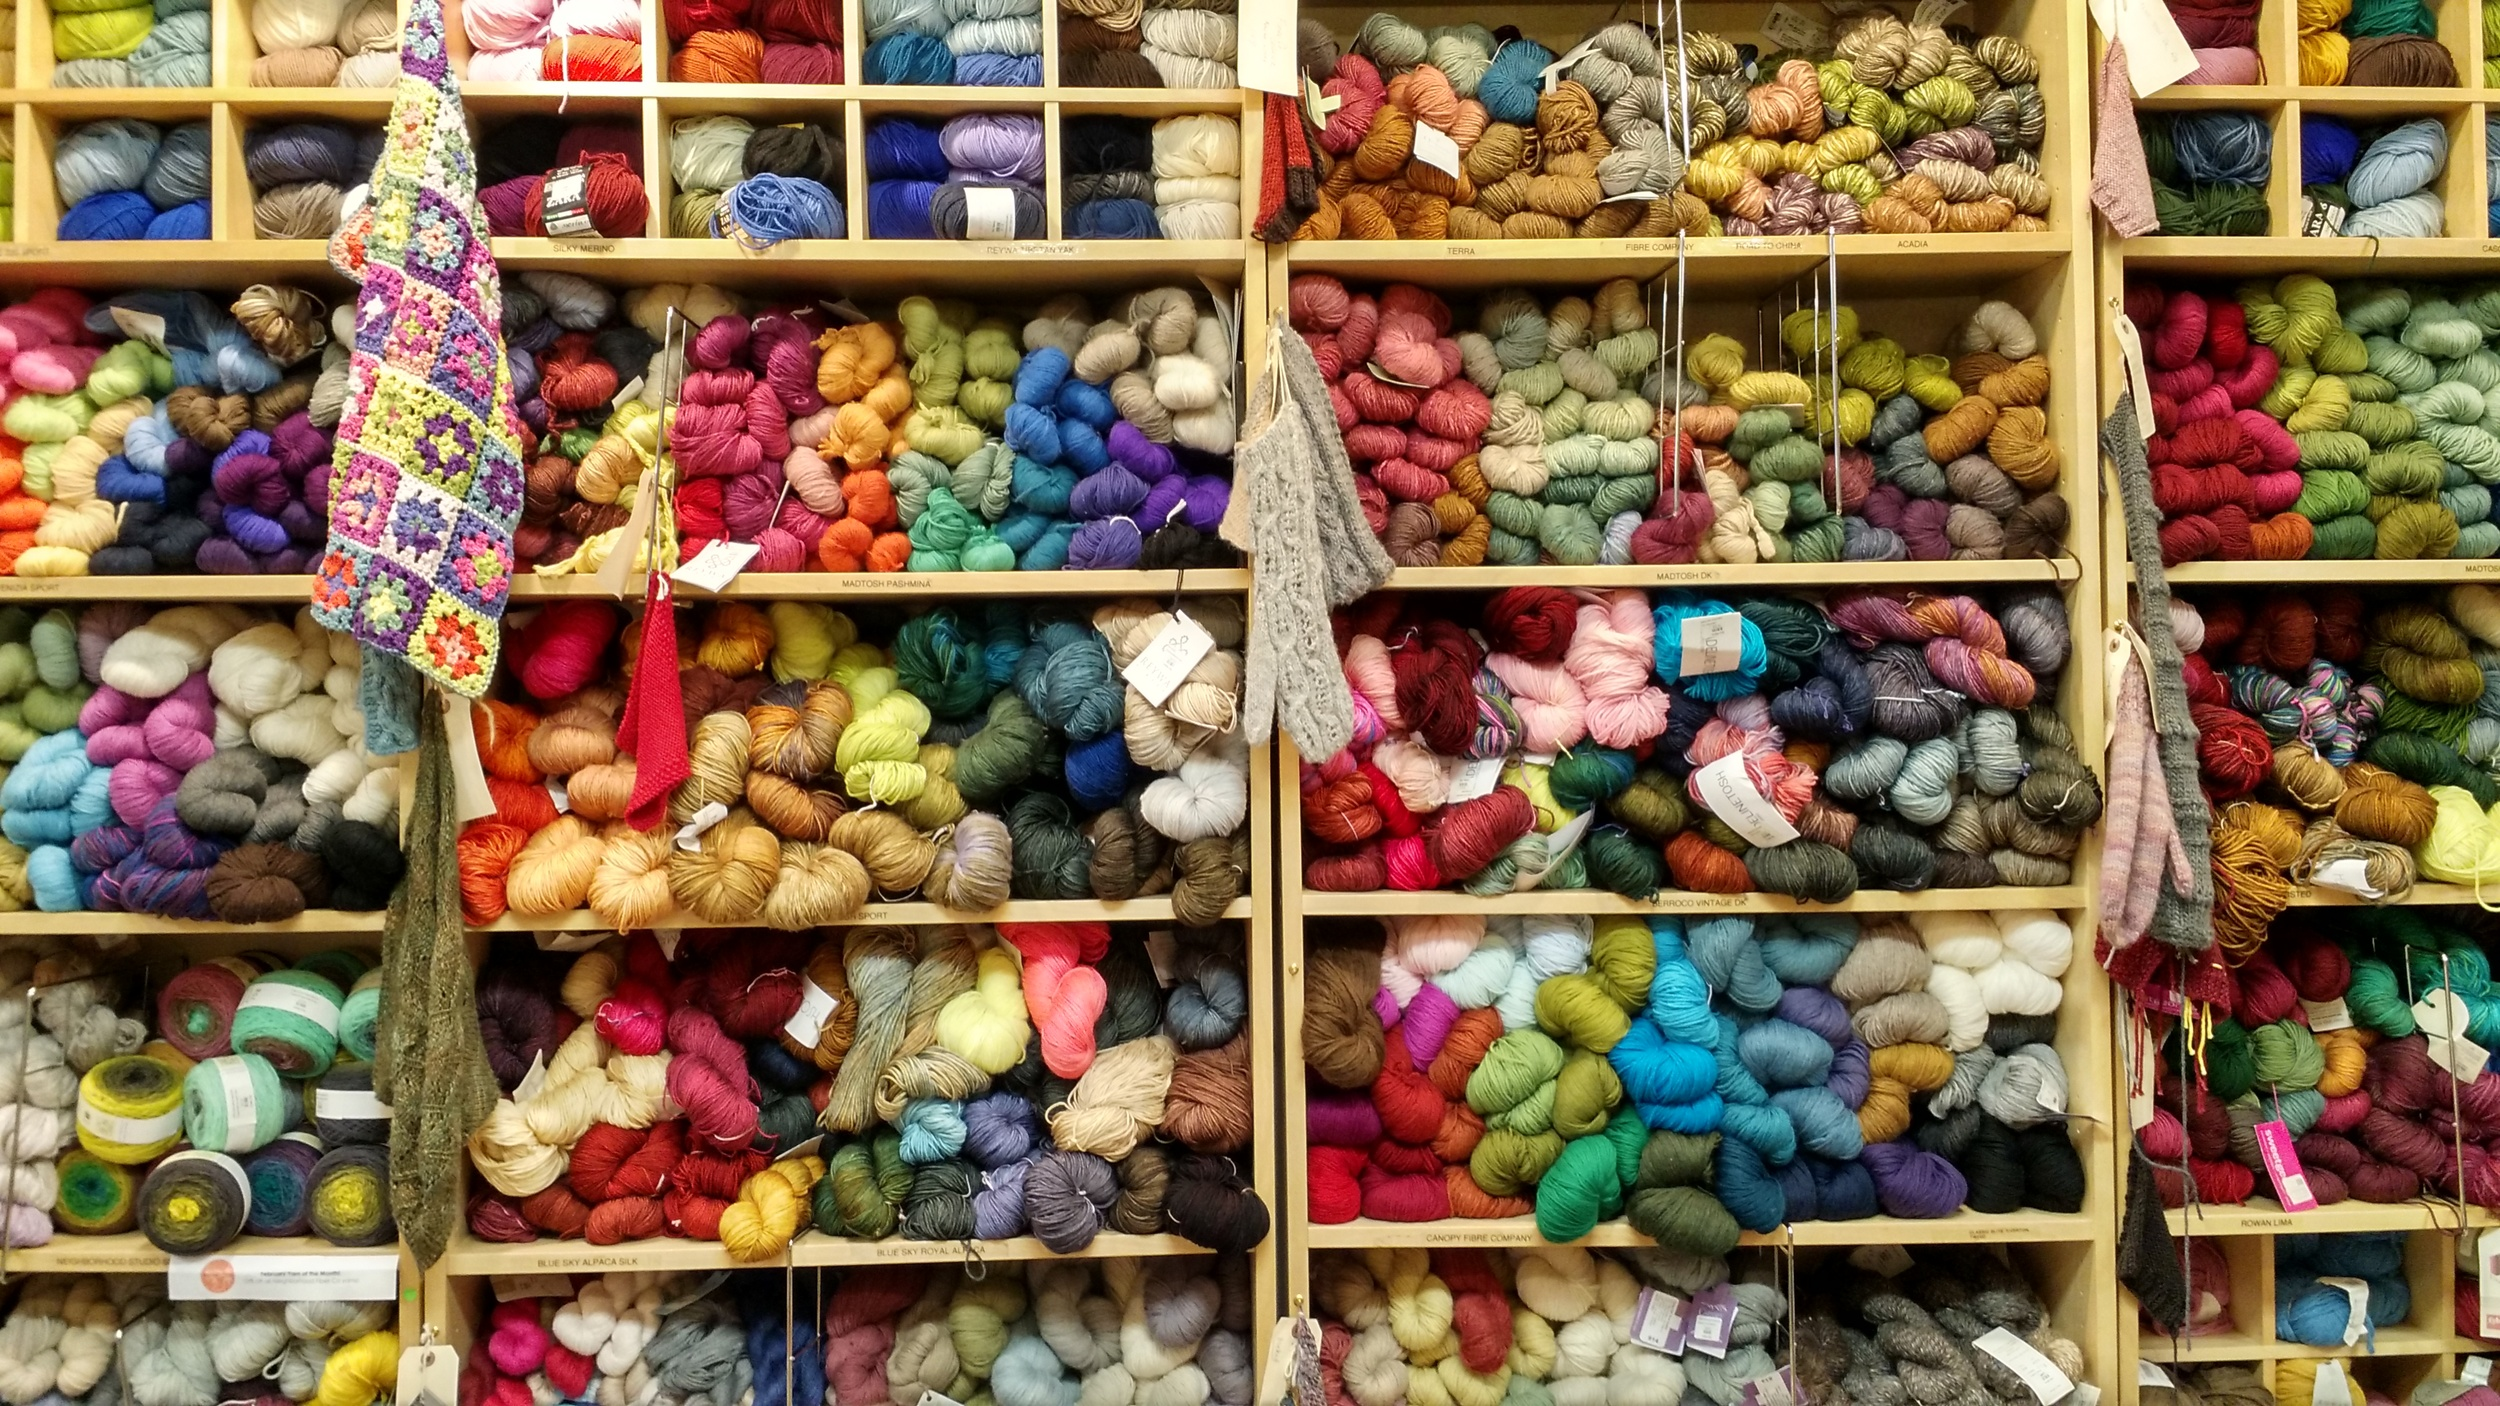 Knitty City Shelves